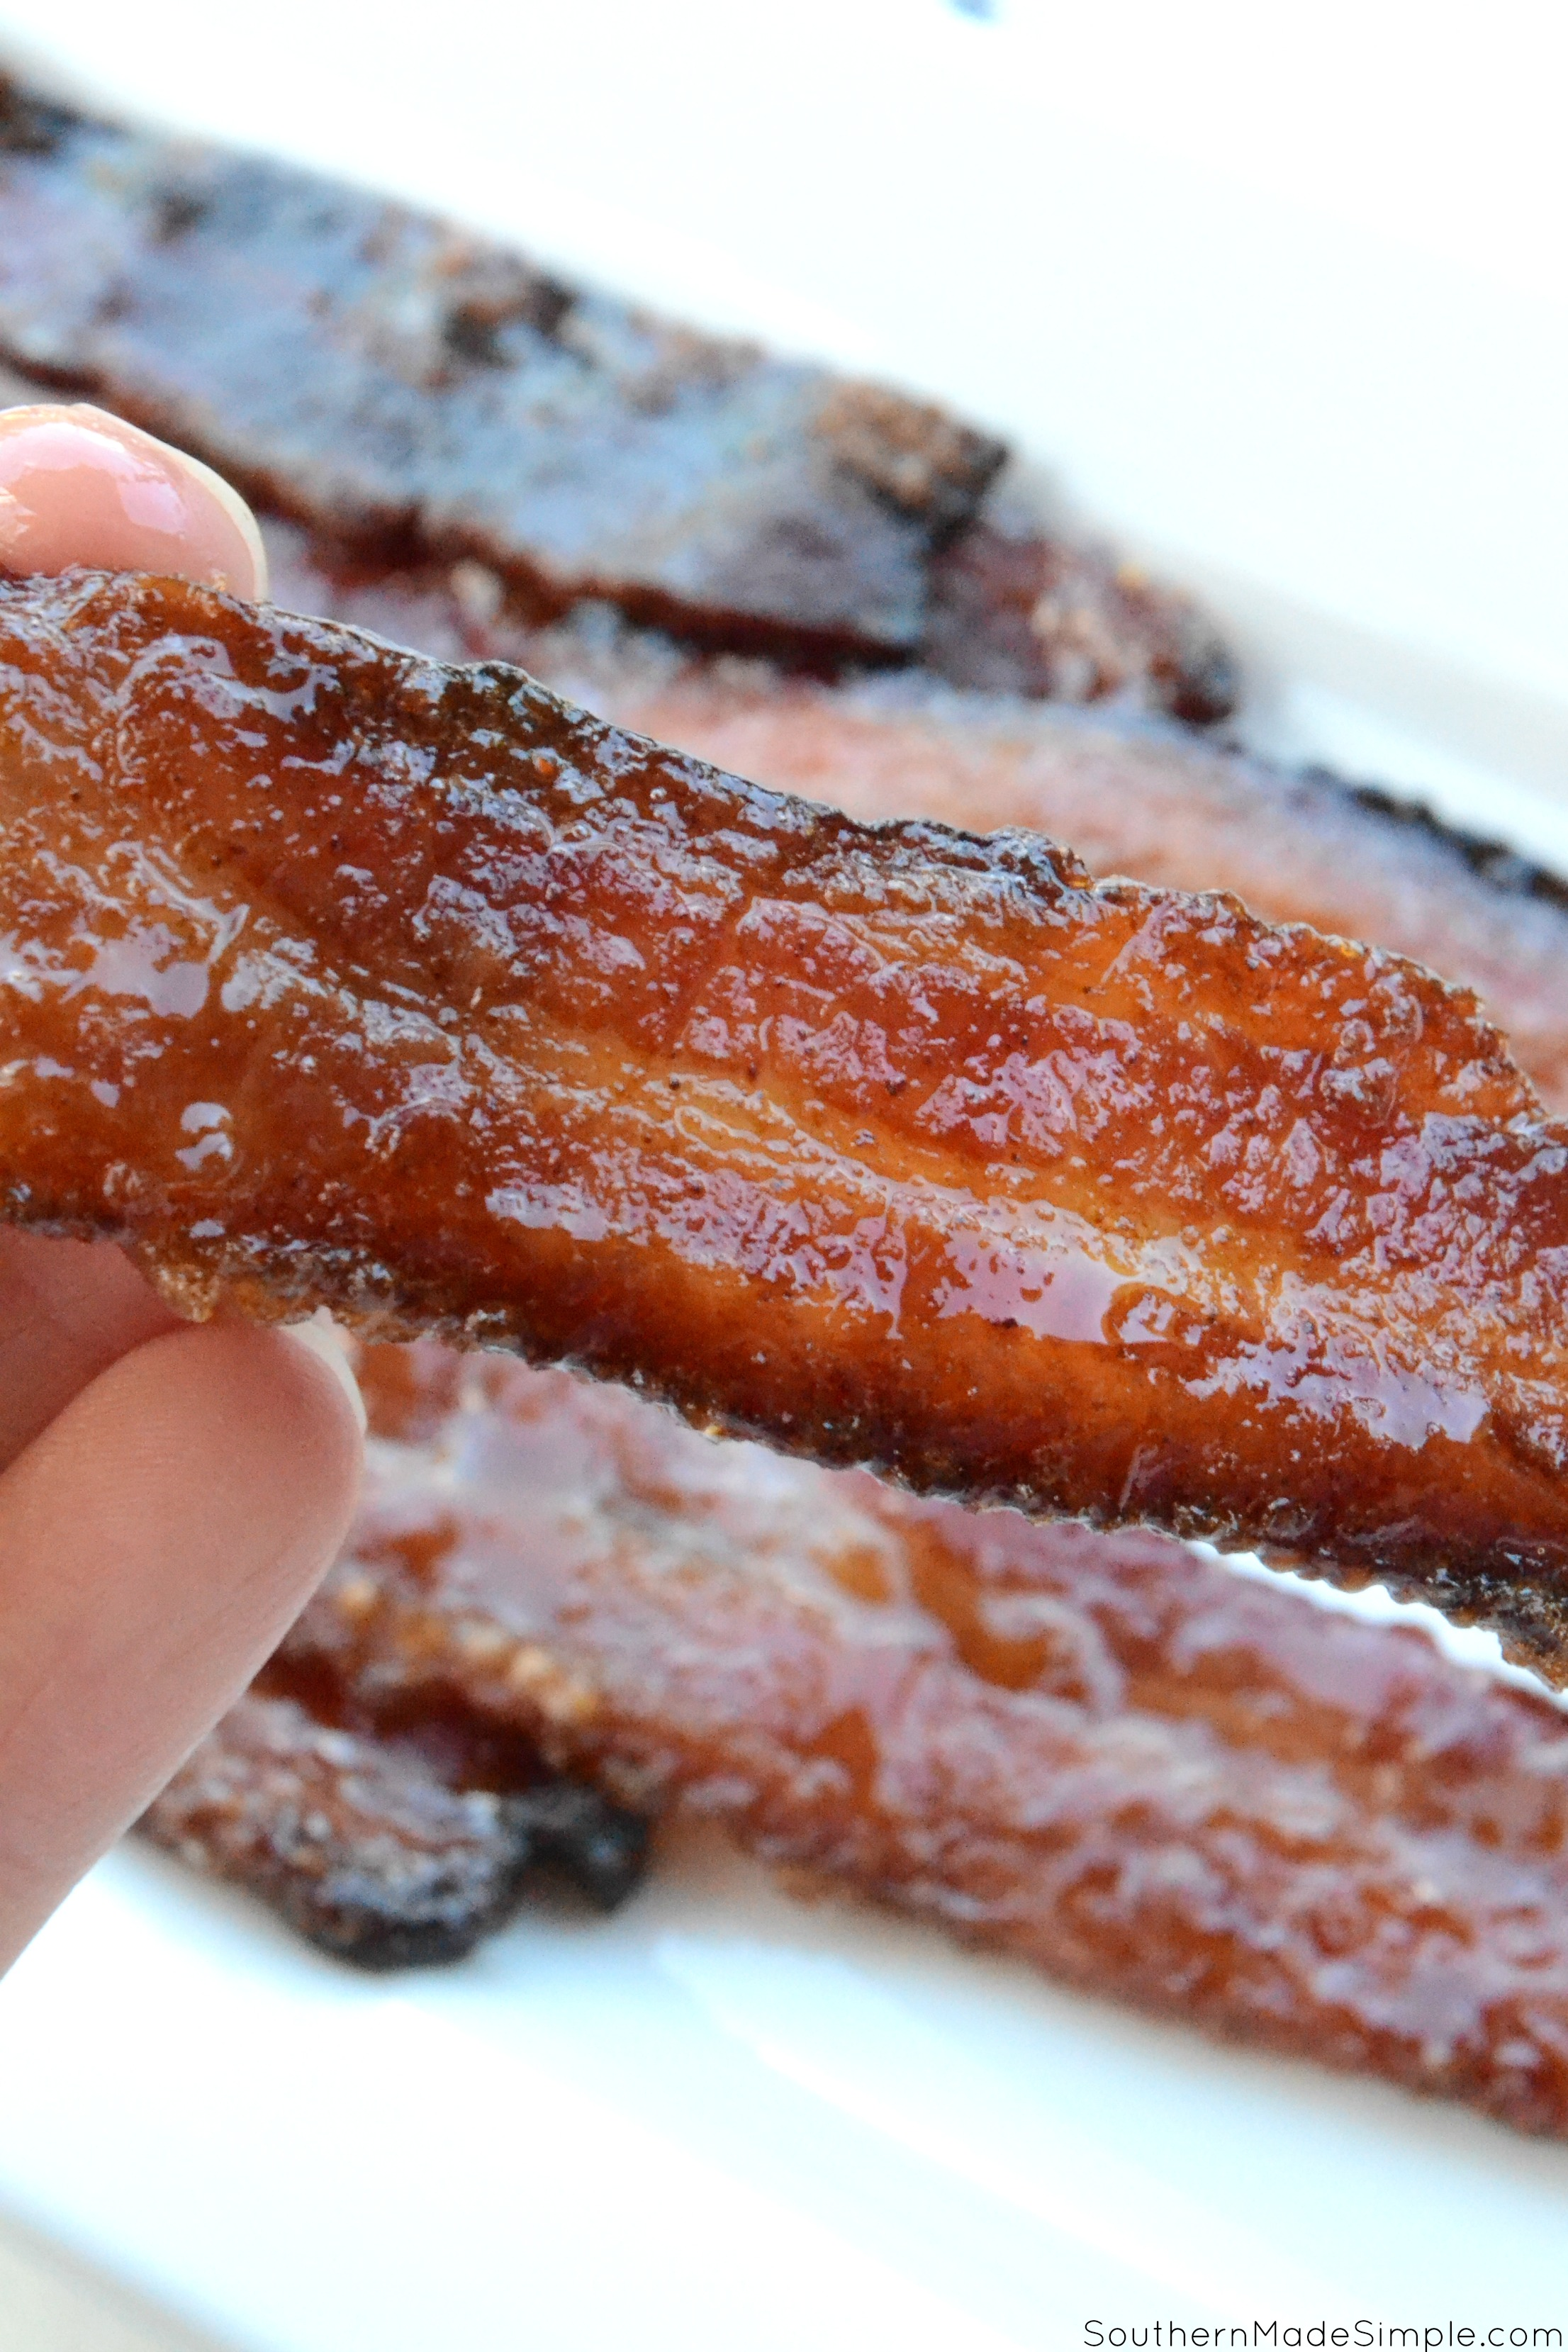 This super simple recipe for sweet and savory candied bacon with a hint of heat is so finger lickin' good, you'll want to make it all the time!